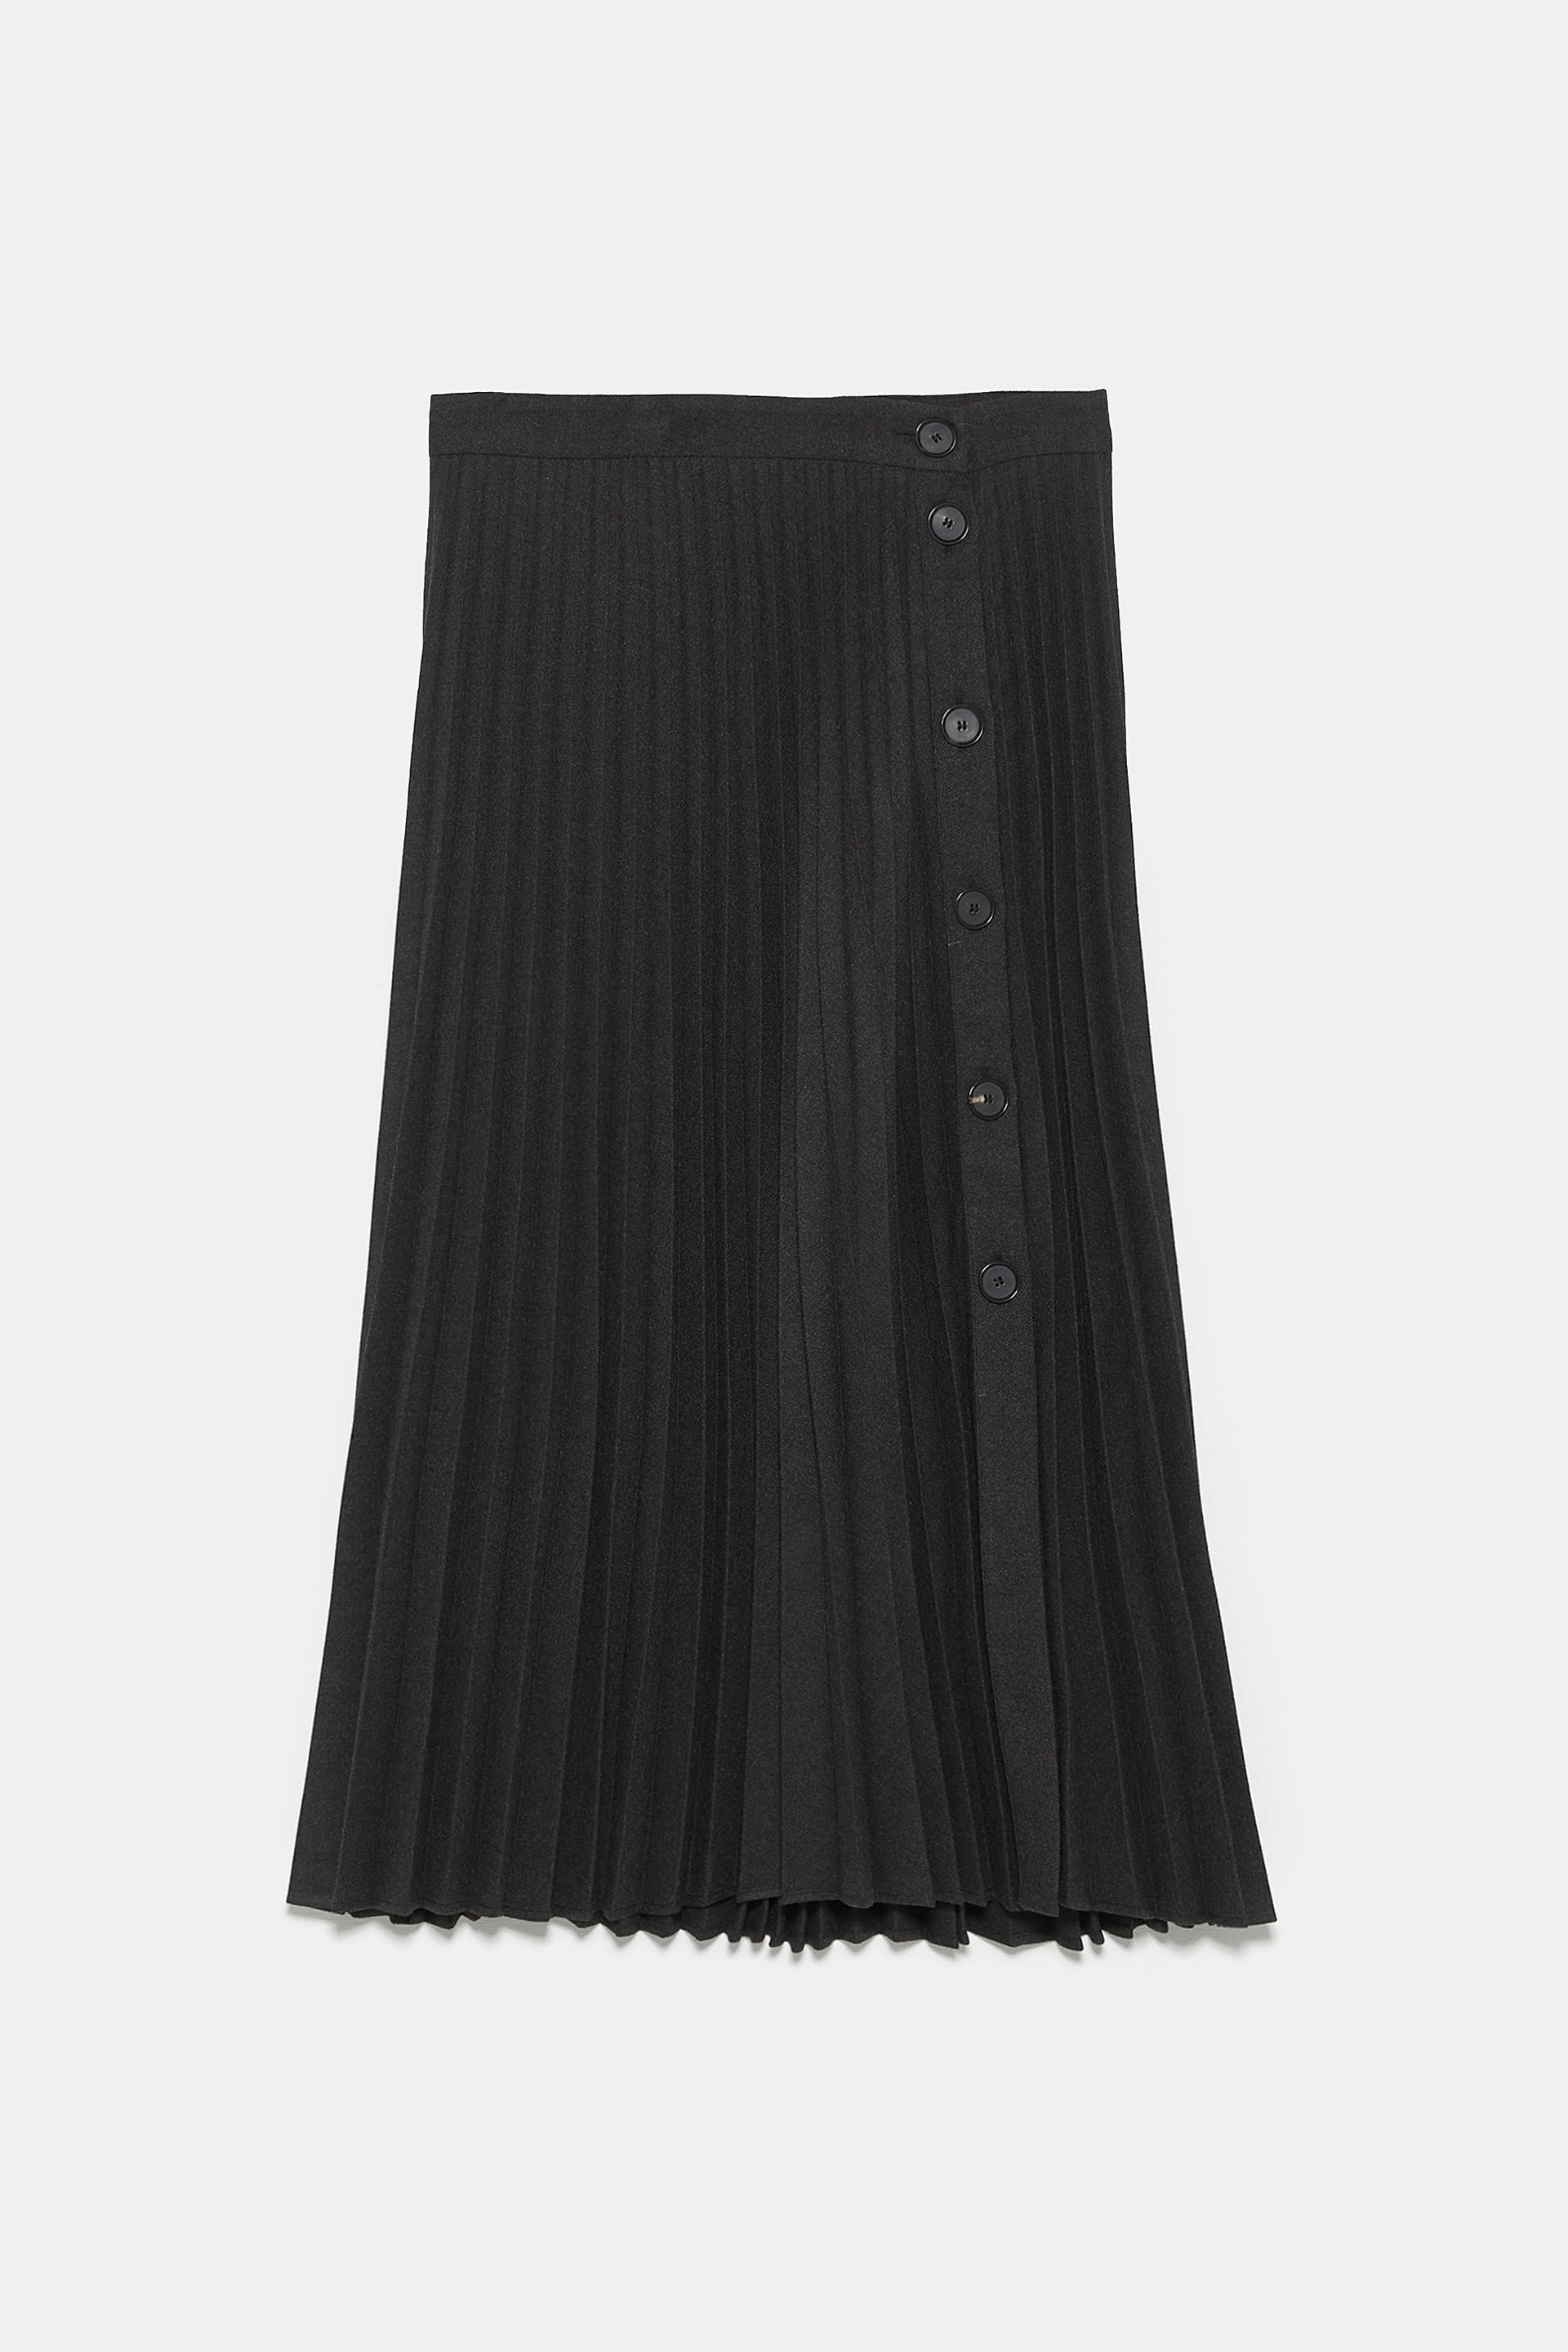 PLEATED BUTTONED SKIRT - View All-SKIRTS-WOMAN | ZARA United States